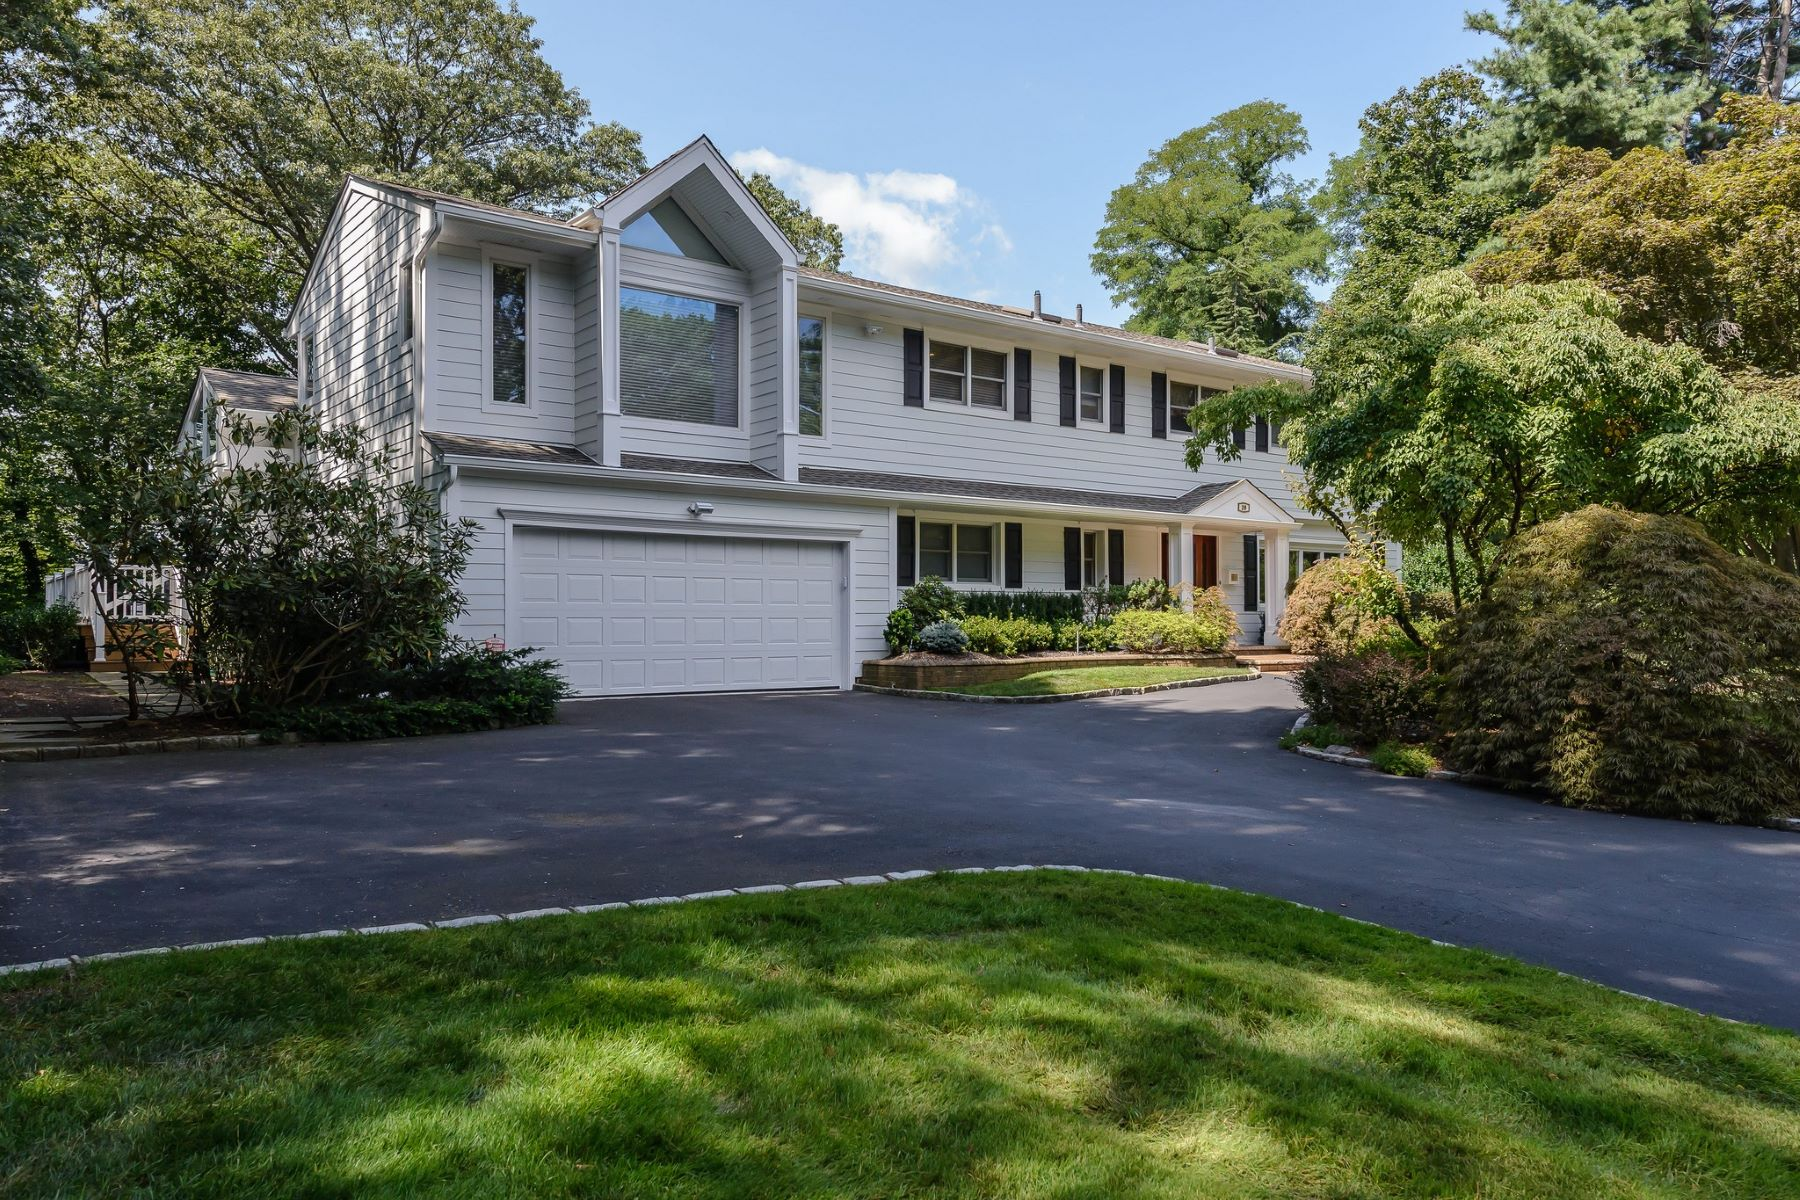 Single Family Homes for Active at East Hills 20 Lawn Dr East Hills, New York 11576 United States